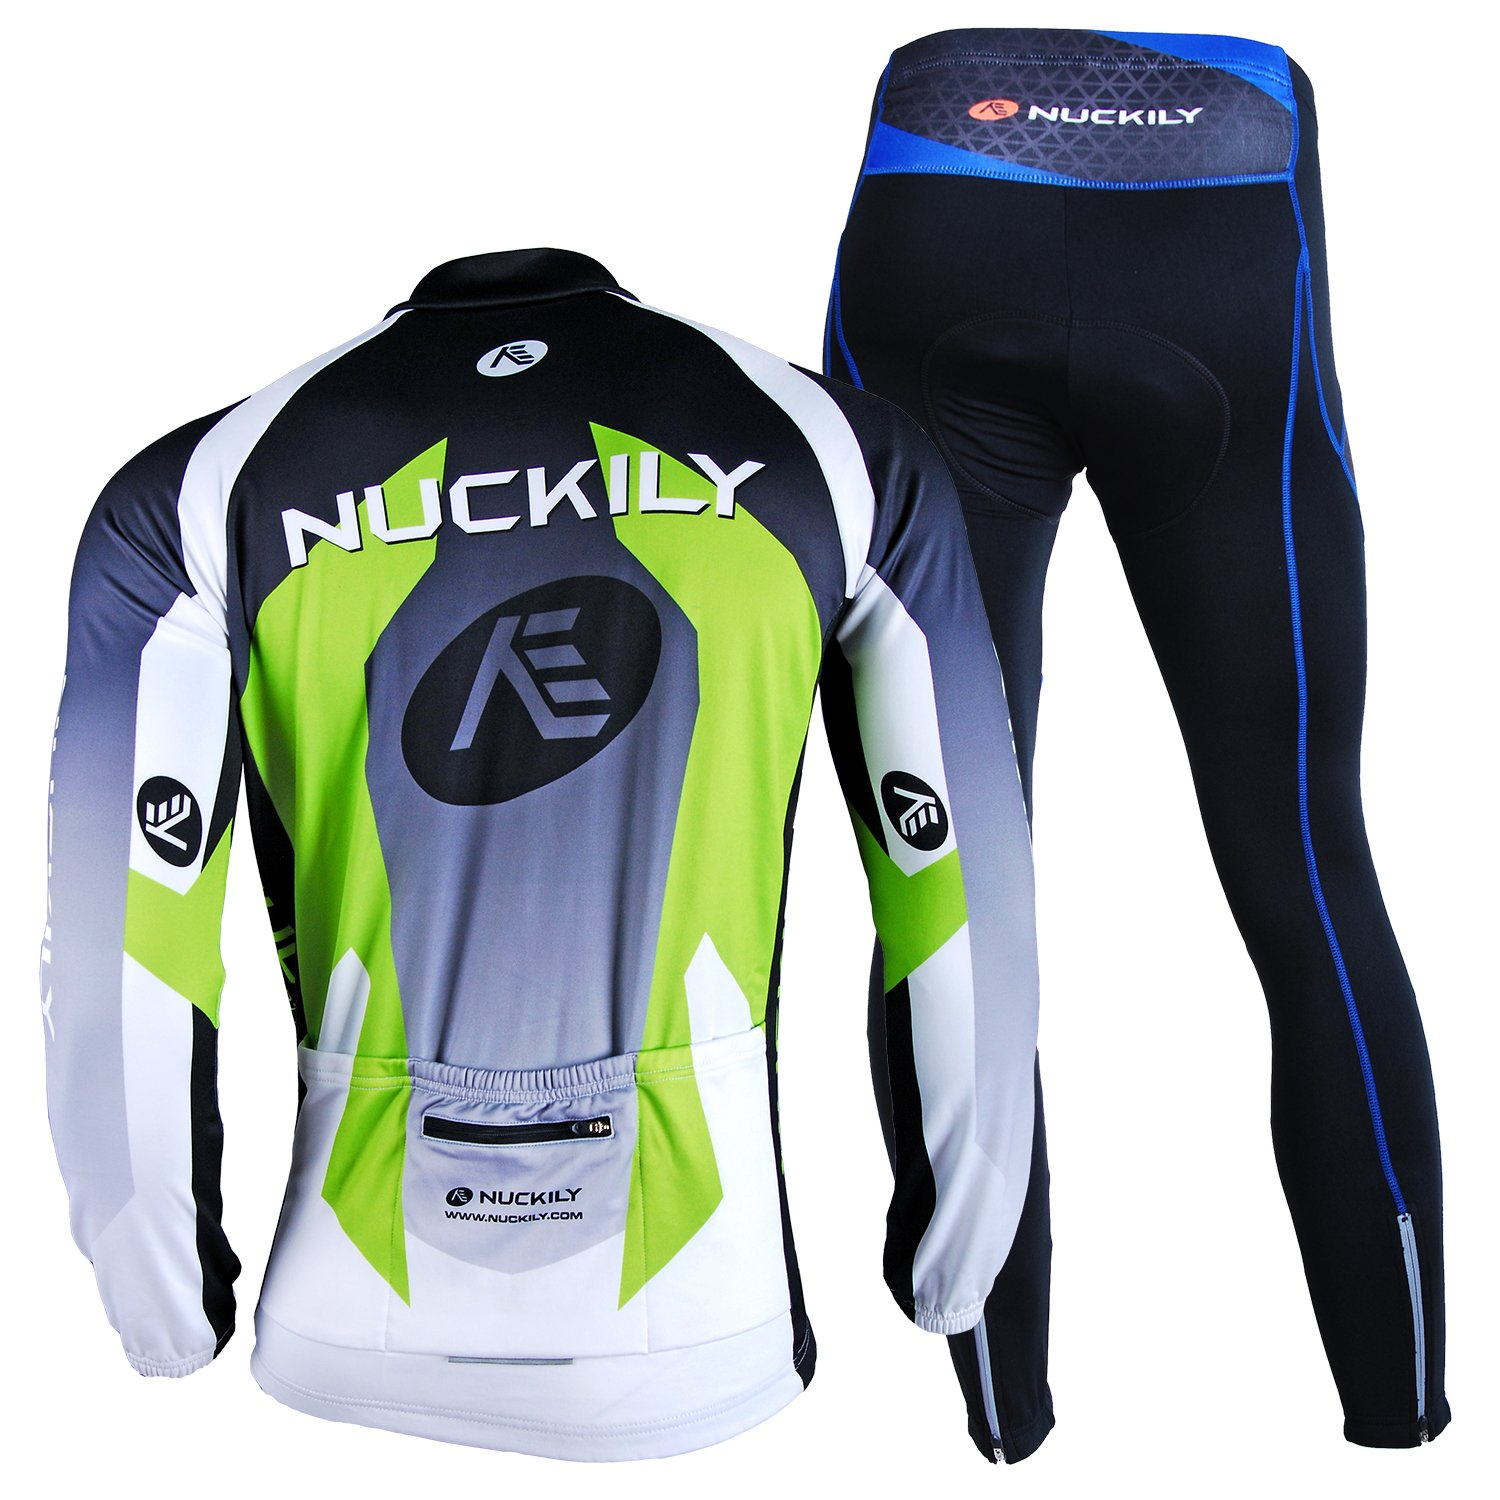 6a623cce0 NUCKILY Mens Bicycle Jersey Set Long Sleeve Fleece Cycling Jersey With  Pants Suit For Winter LTD